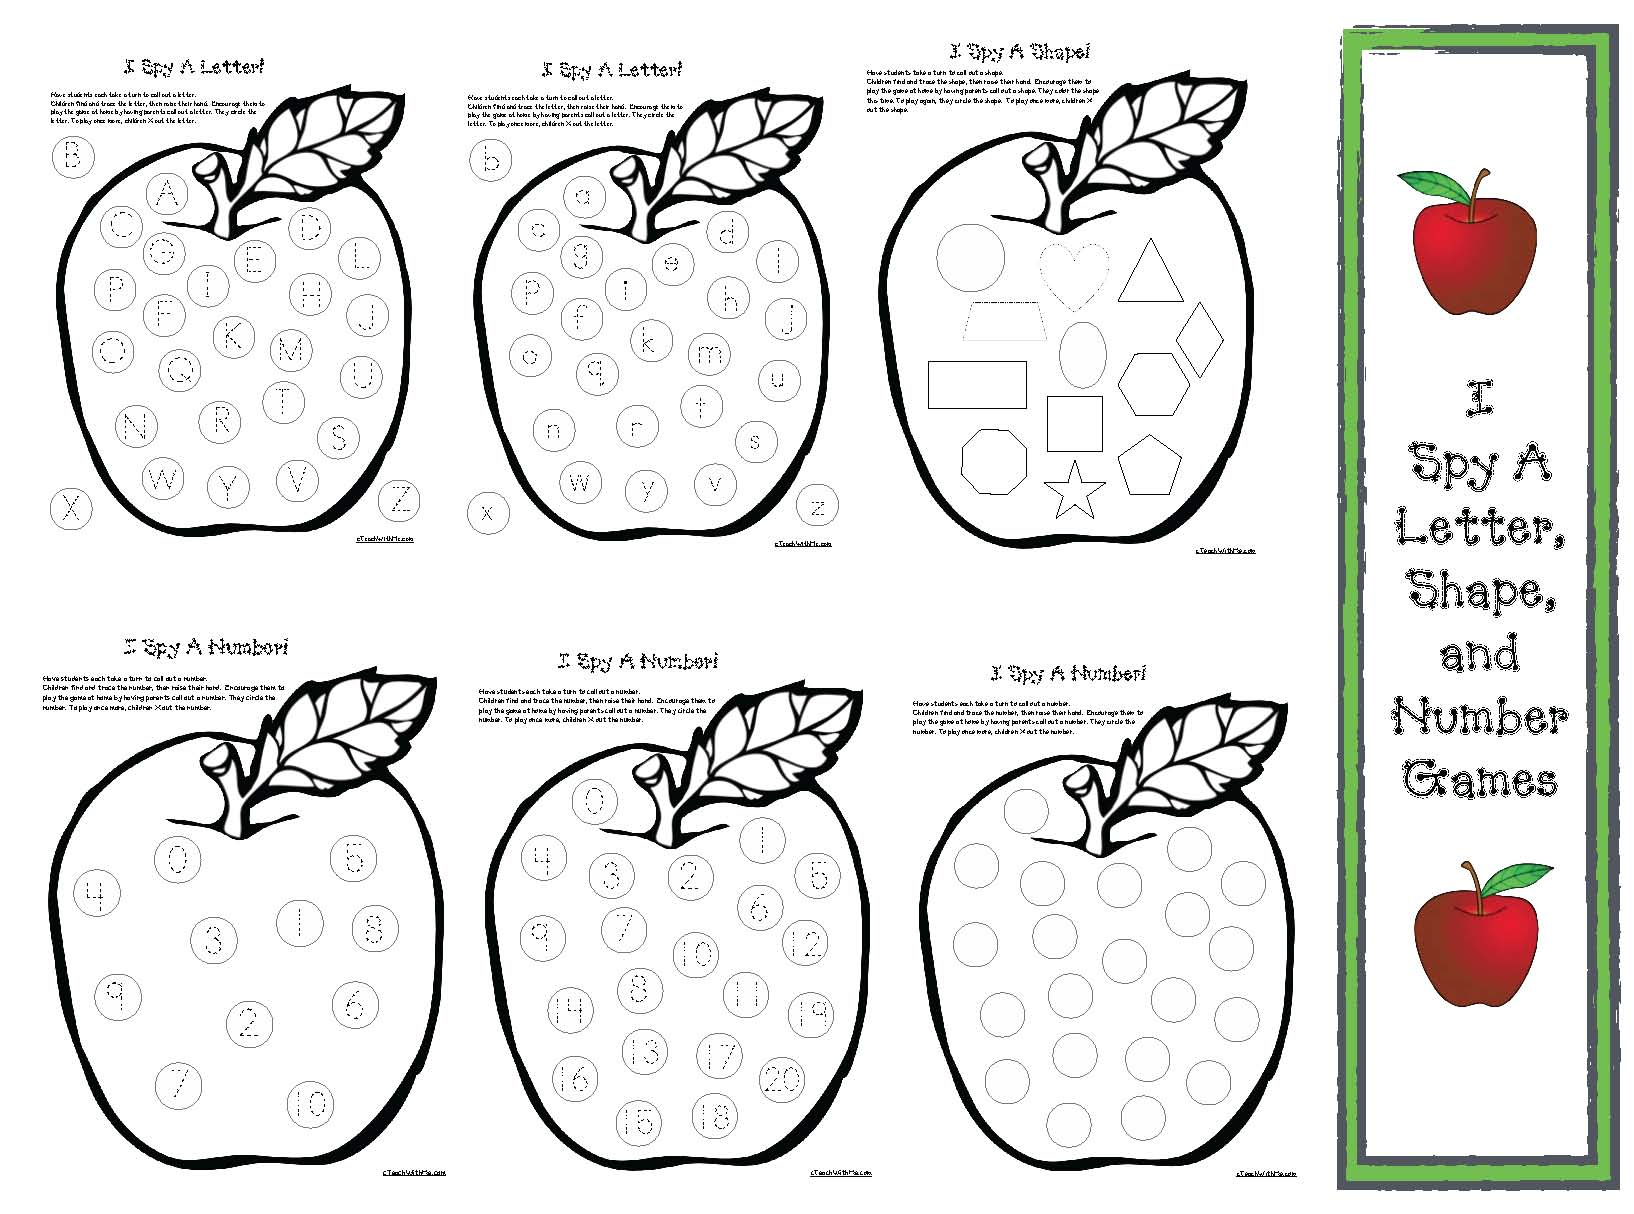 connect the dots worksheets, alphabet connect the dots, apple connect the dots, apple crafts, I spy games, I spy letters, I spy numbers, I spy shapes, shape activities, shape games, alphabet activities, alphabet games, apple games, apple puzzles, name activities,